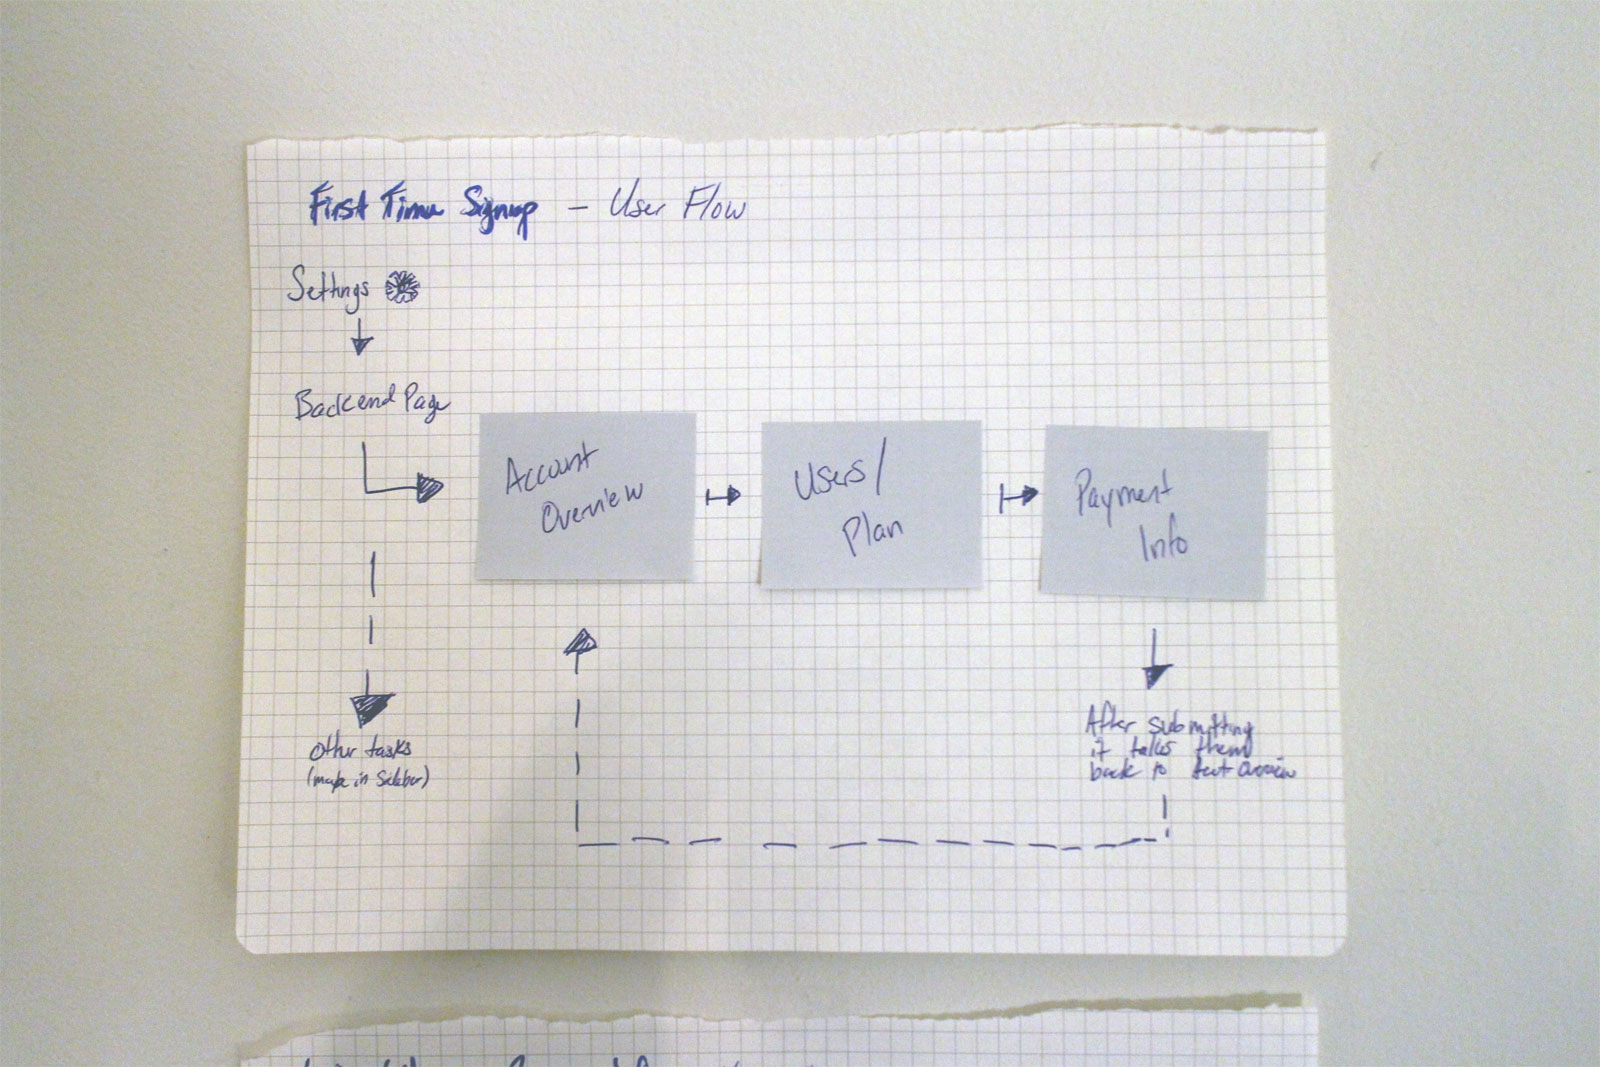 First Time Signup User Flow